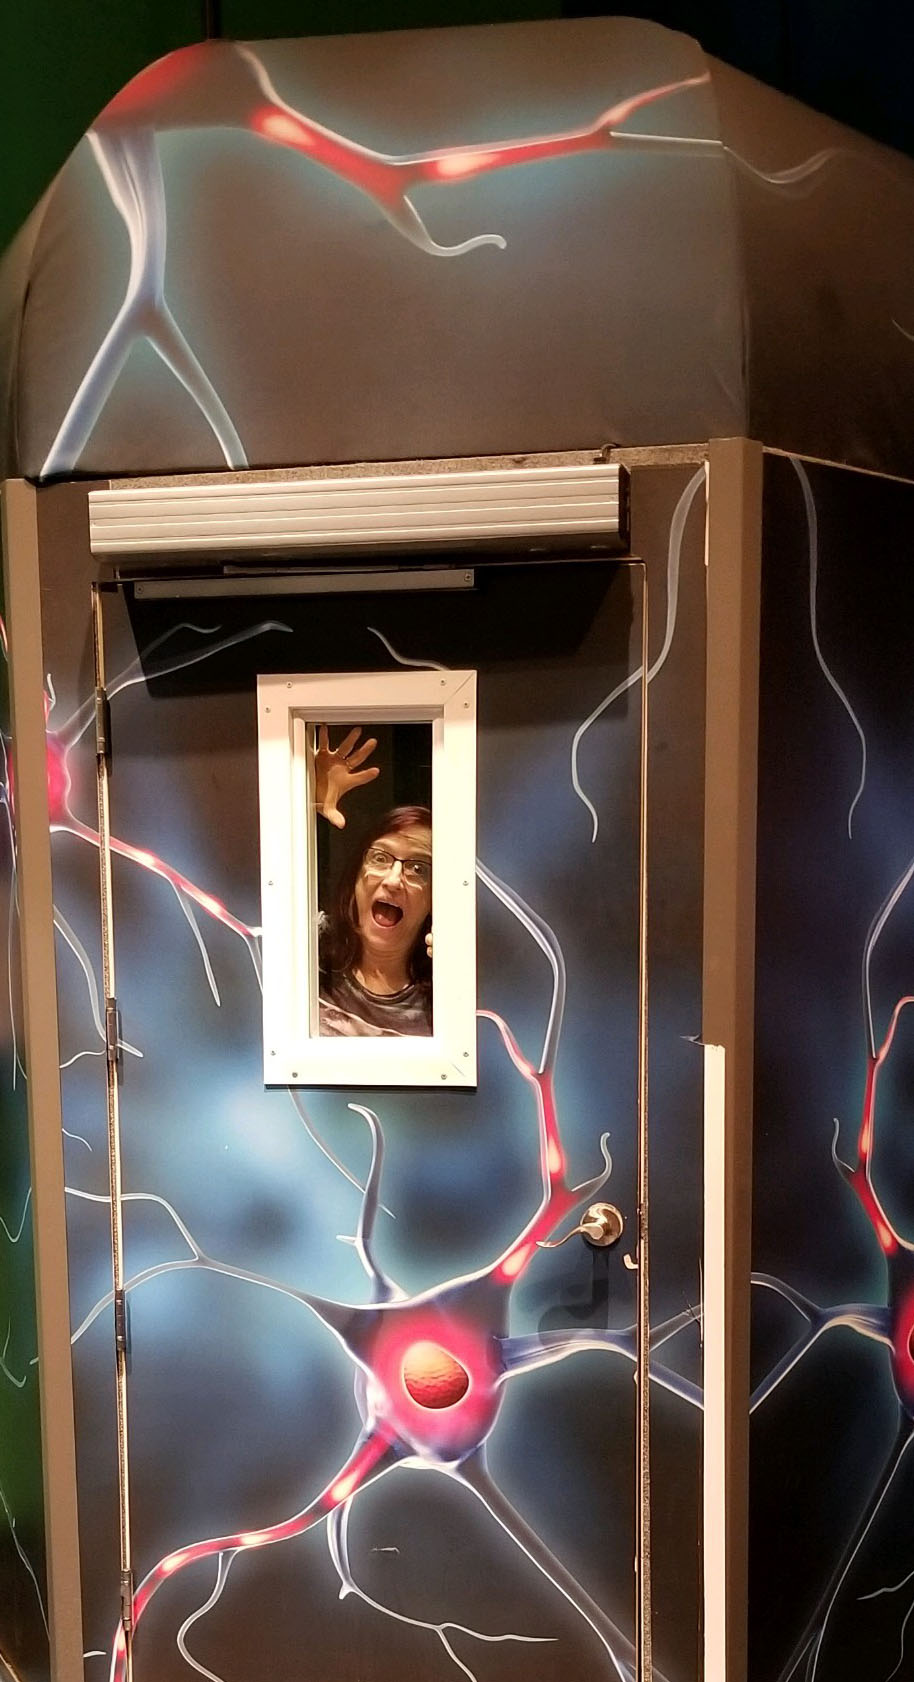 Sharon trapped inside a time machine with frightened face and hands pressed against the window.